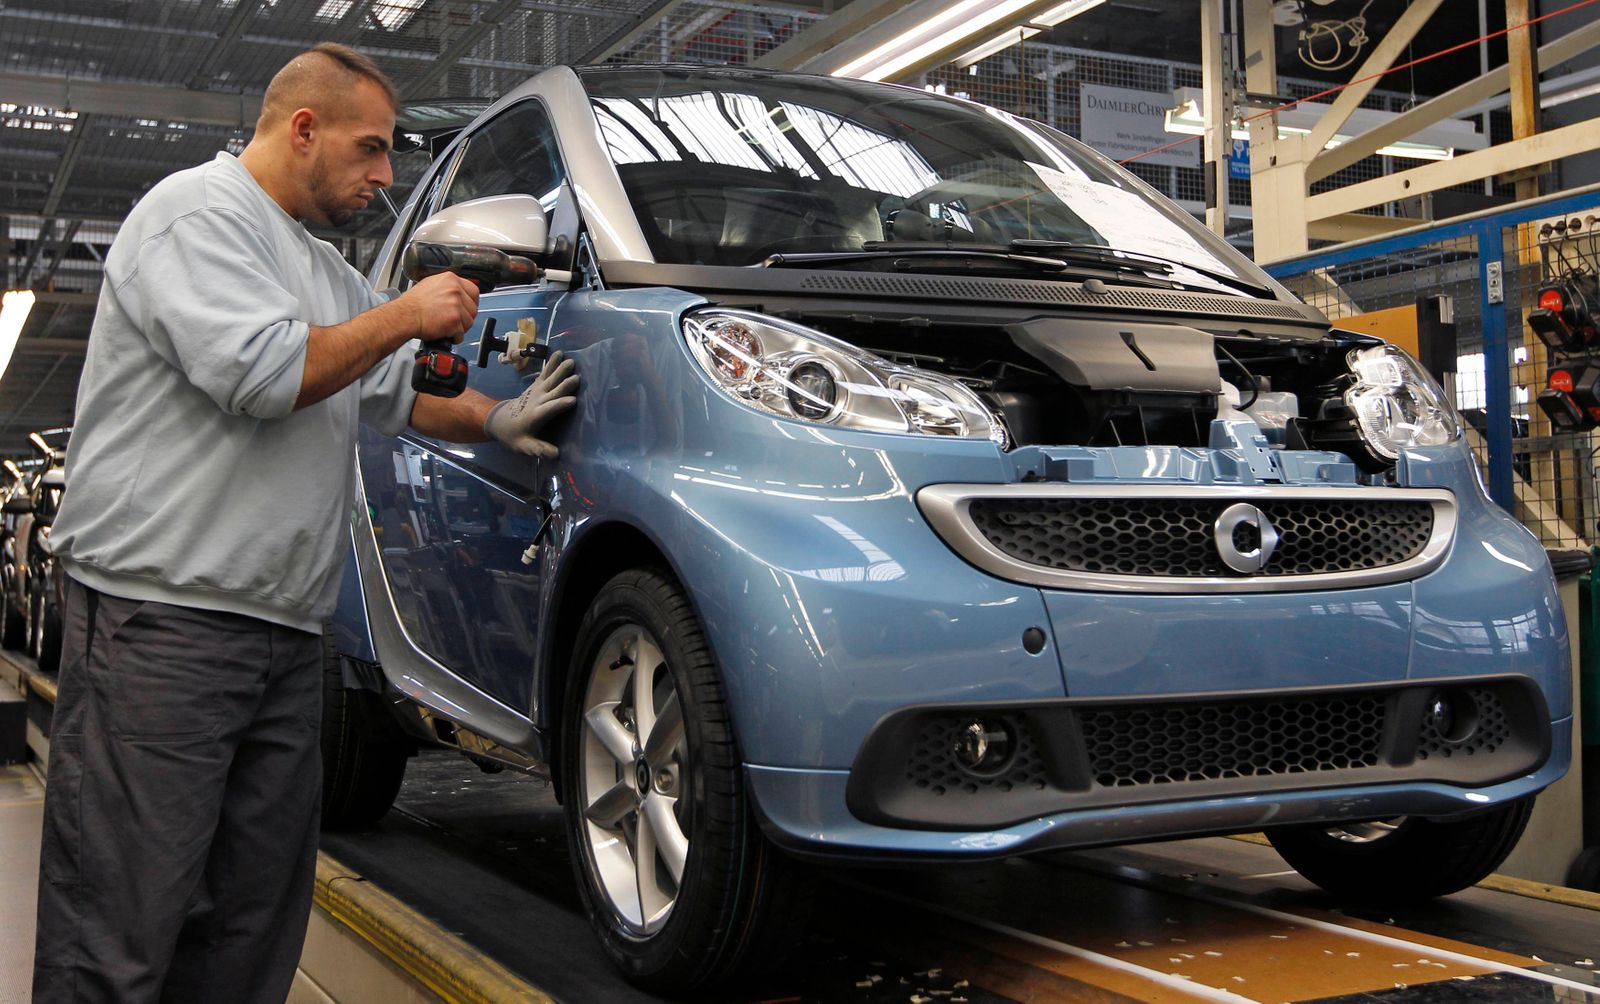 An employee at the Smart Cars factory works on the Smart Fortwo assembly line in Hambach